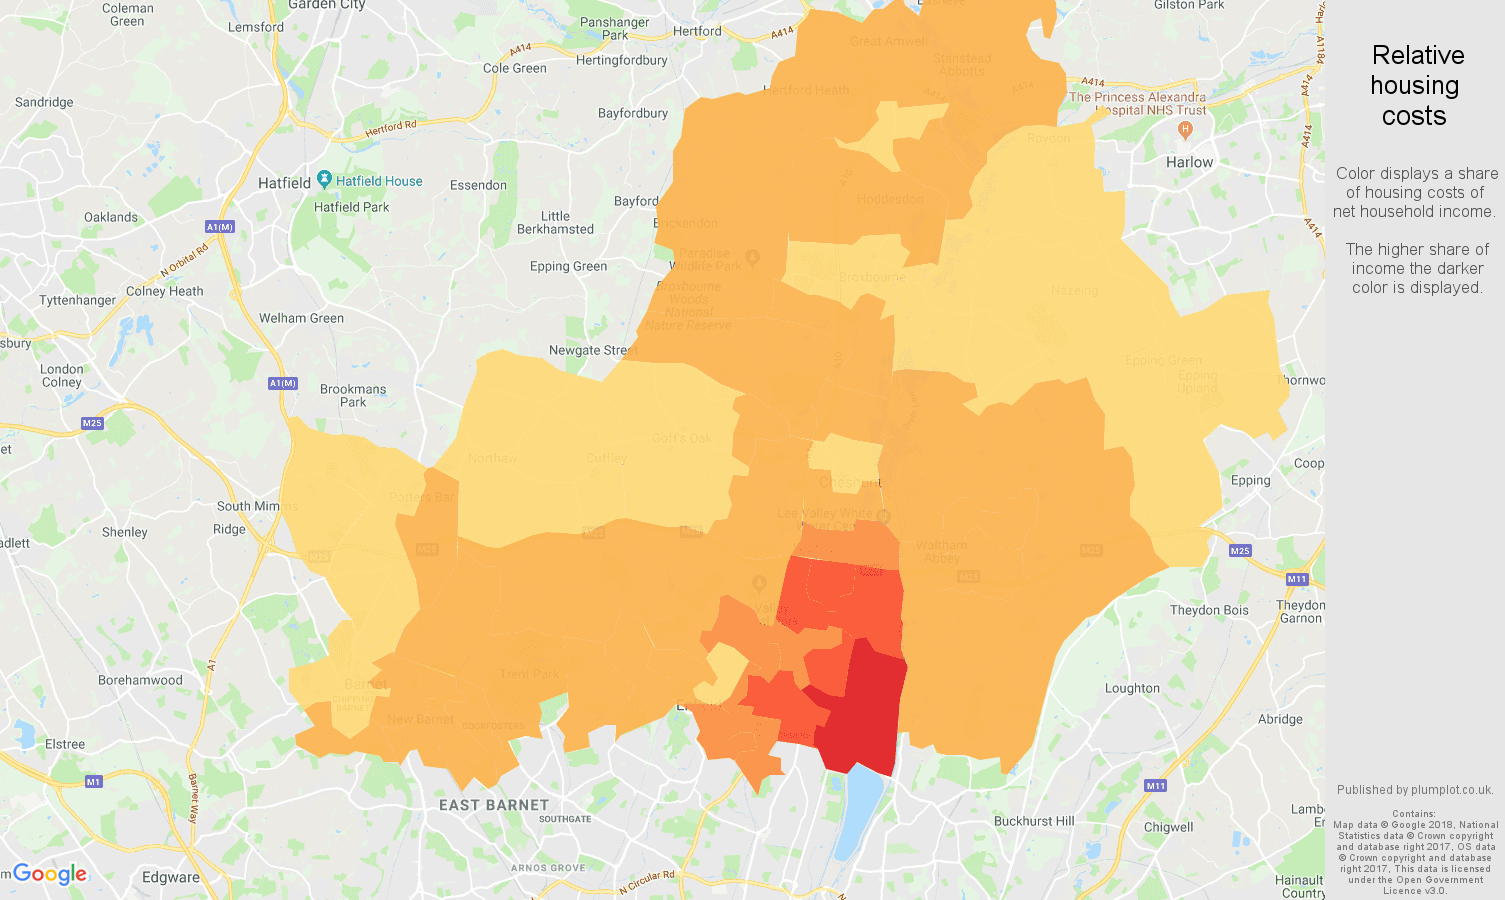 Enfield relative housing costs map